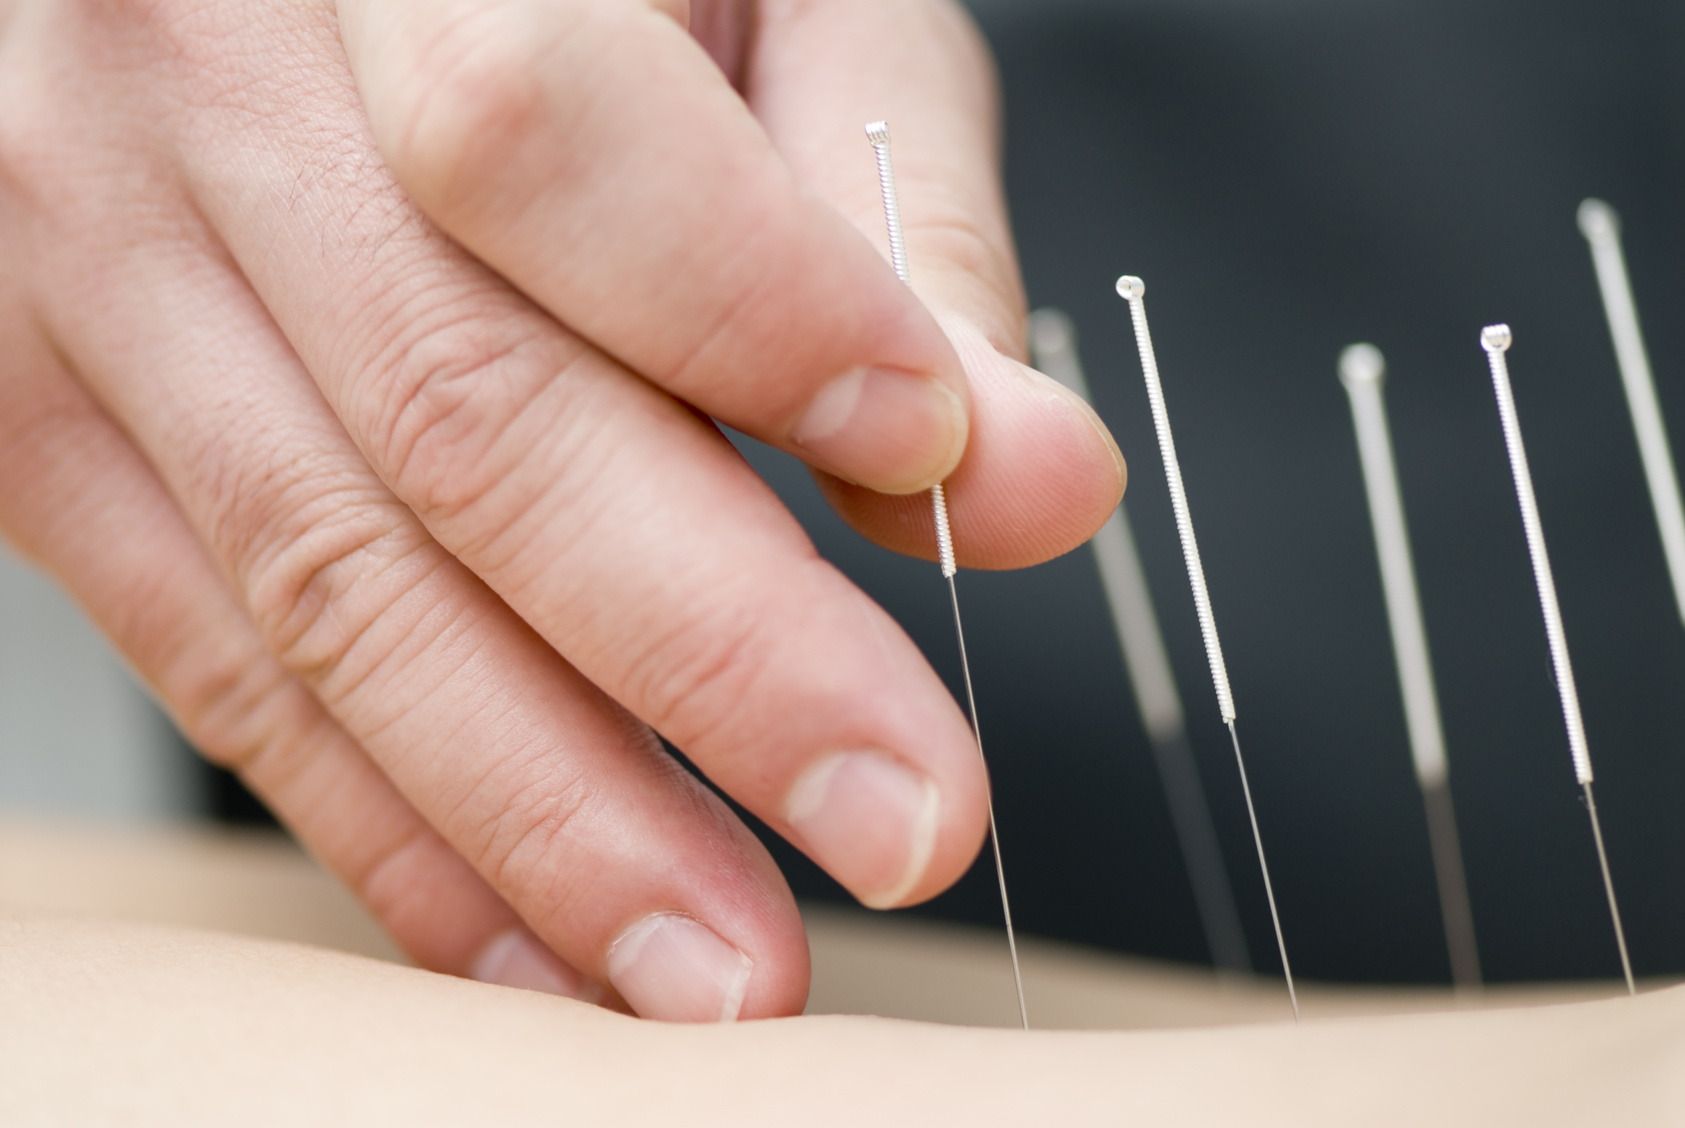 Acupuncture - Hair thin needles are placed in specific points that I like to call the body's 'vortex' locations. Each point has specific indications and therapeutic benefits. Acupuncture helps to either remove stagnation, or tonify deficiency (with many more effects in between). In essence, it balances the energy and creates harmony in the body so that it is able to easily heal itself.